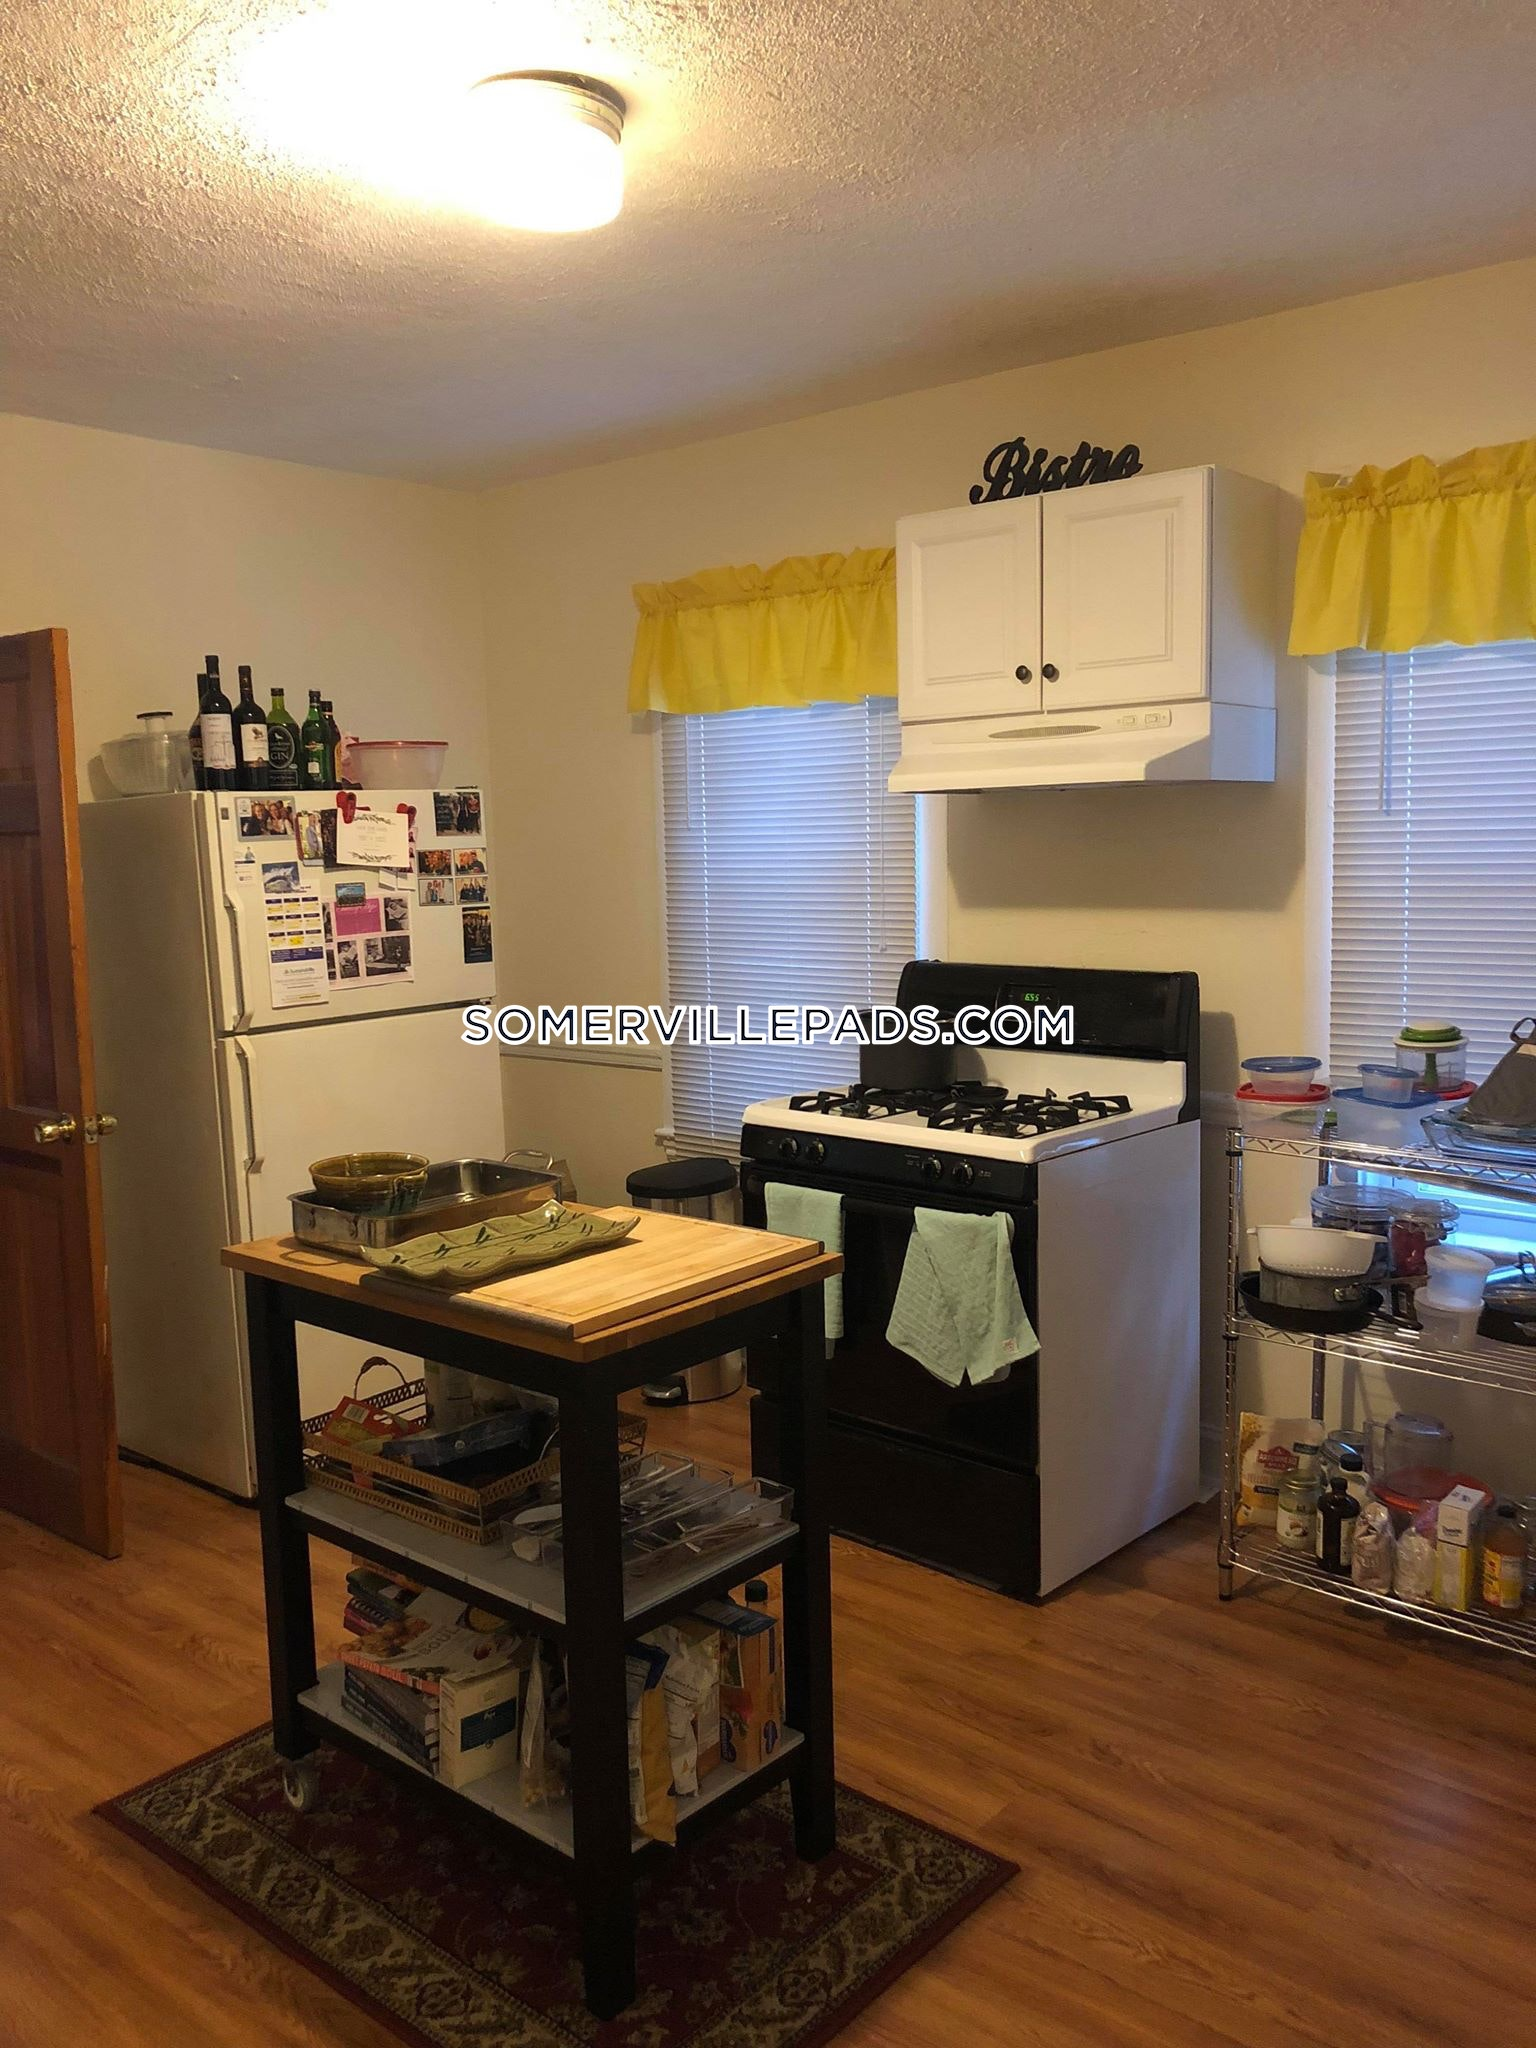 2-beds-1-bath-somerville-davis-square-2500-453052